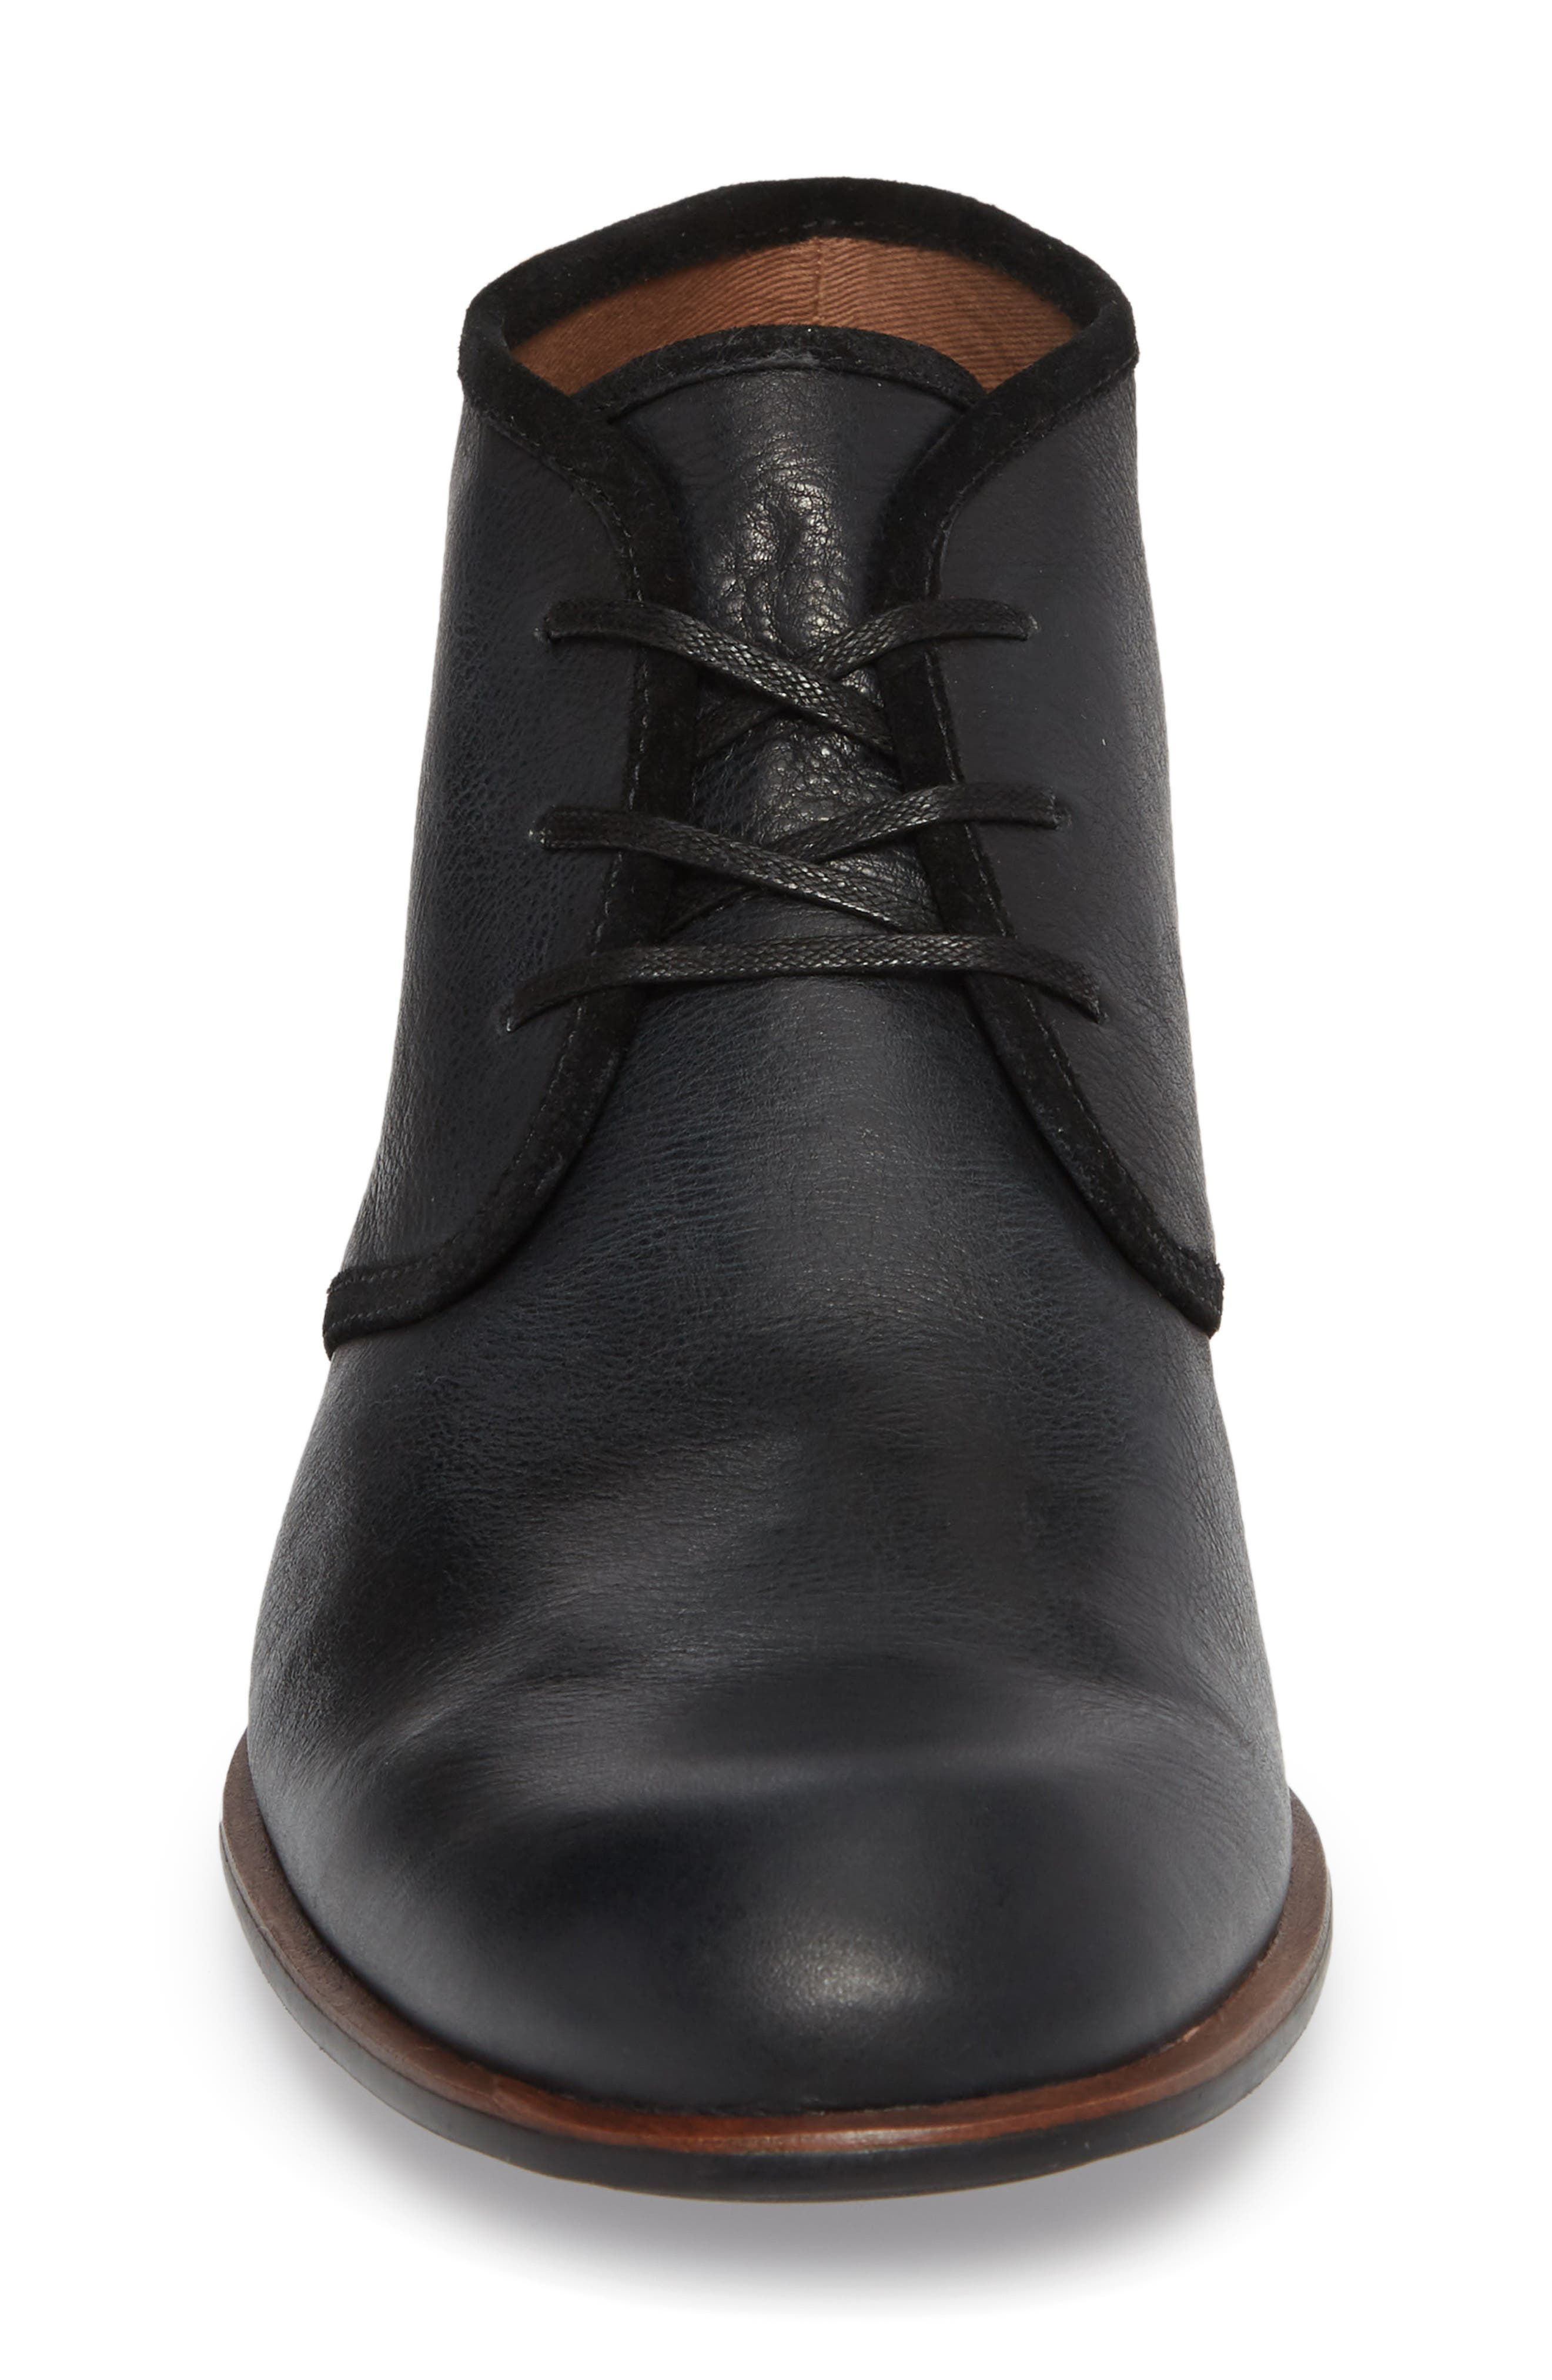 JOHN VARVATOS, Star USA Seagher Chukka Boot, Alternate thumbnail 4, color, 001